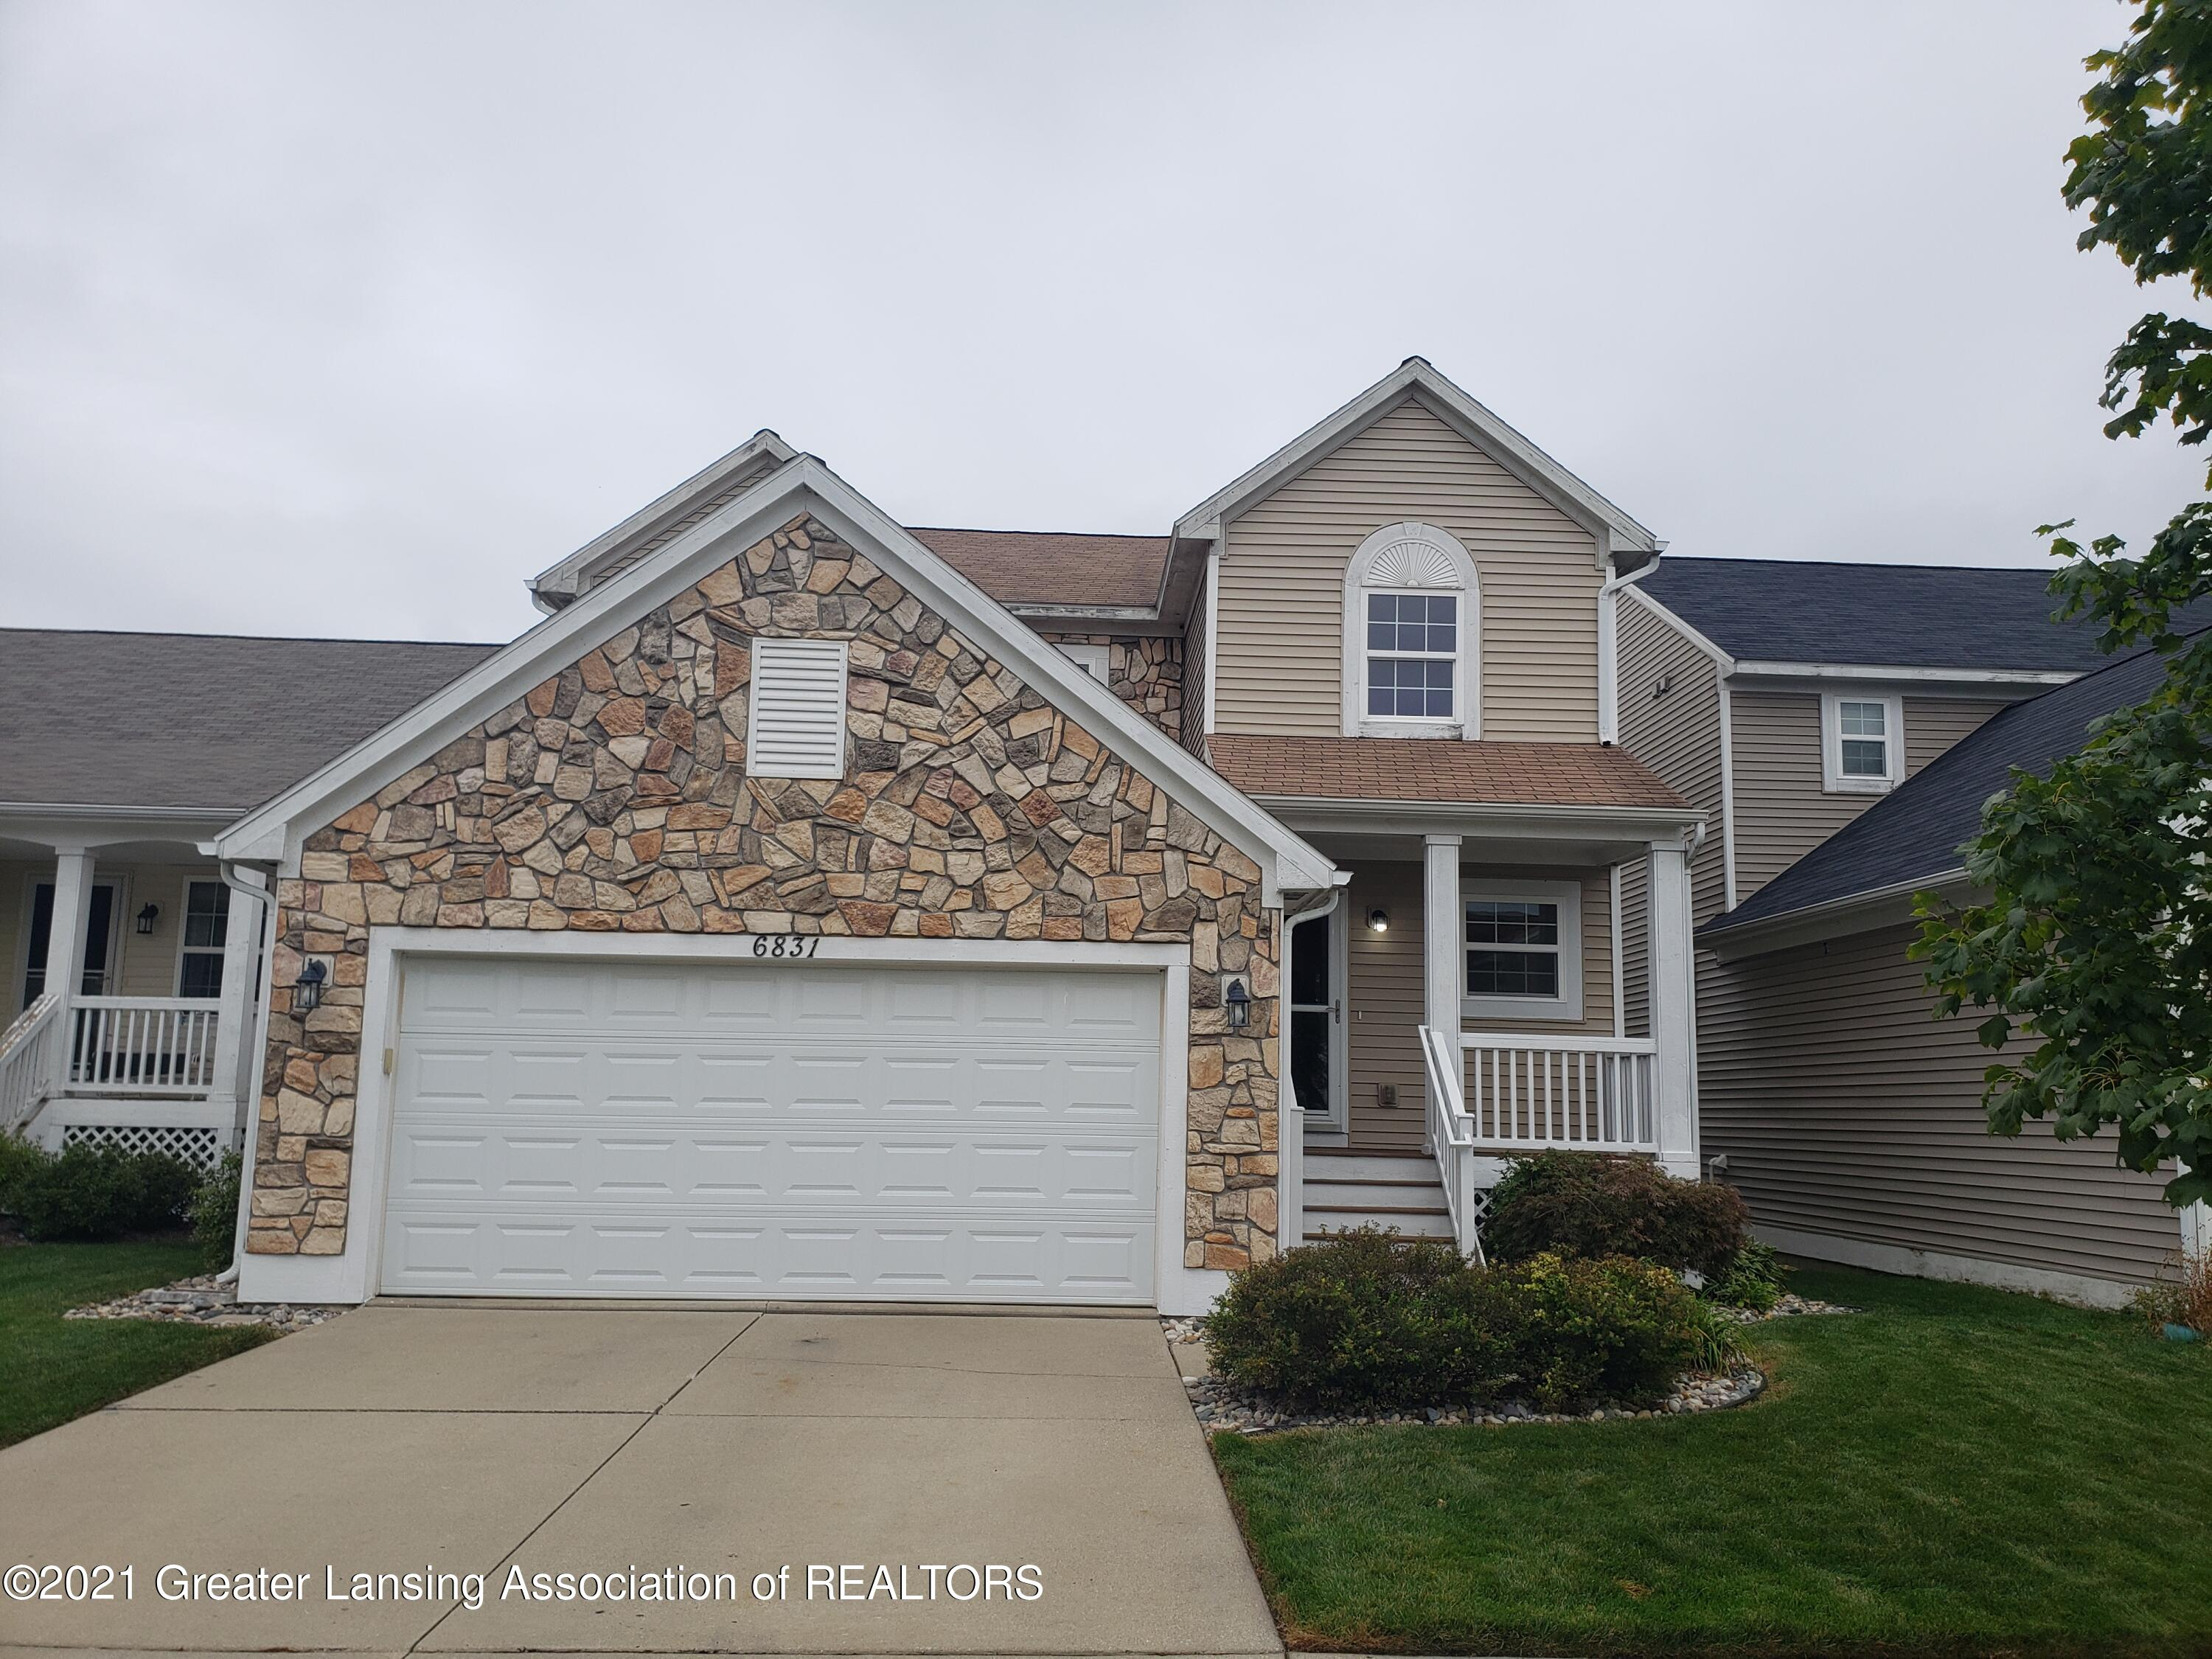 6831 Cotswald Dr - Front of House - 1